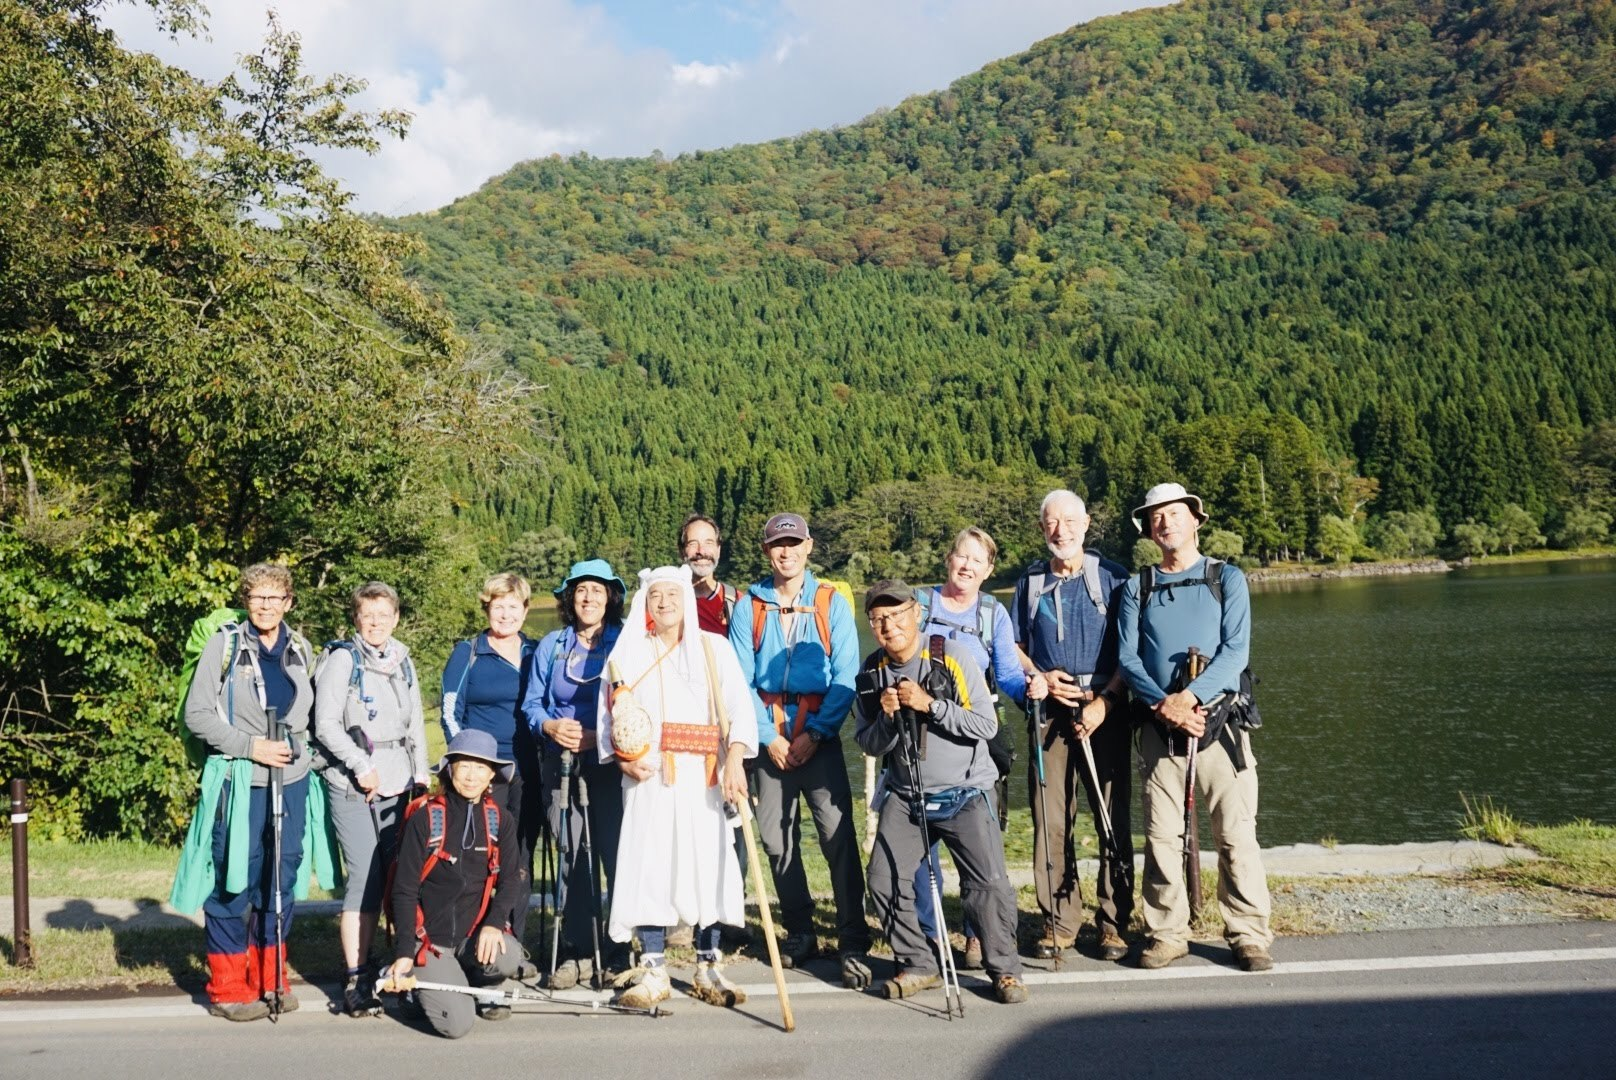 Samurai & Ninja culture through the Shinetsu Trail Hike October 2019_d0112928_02240758.jpg